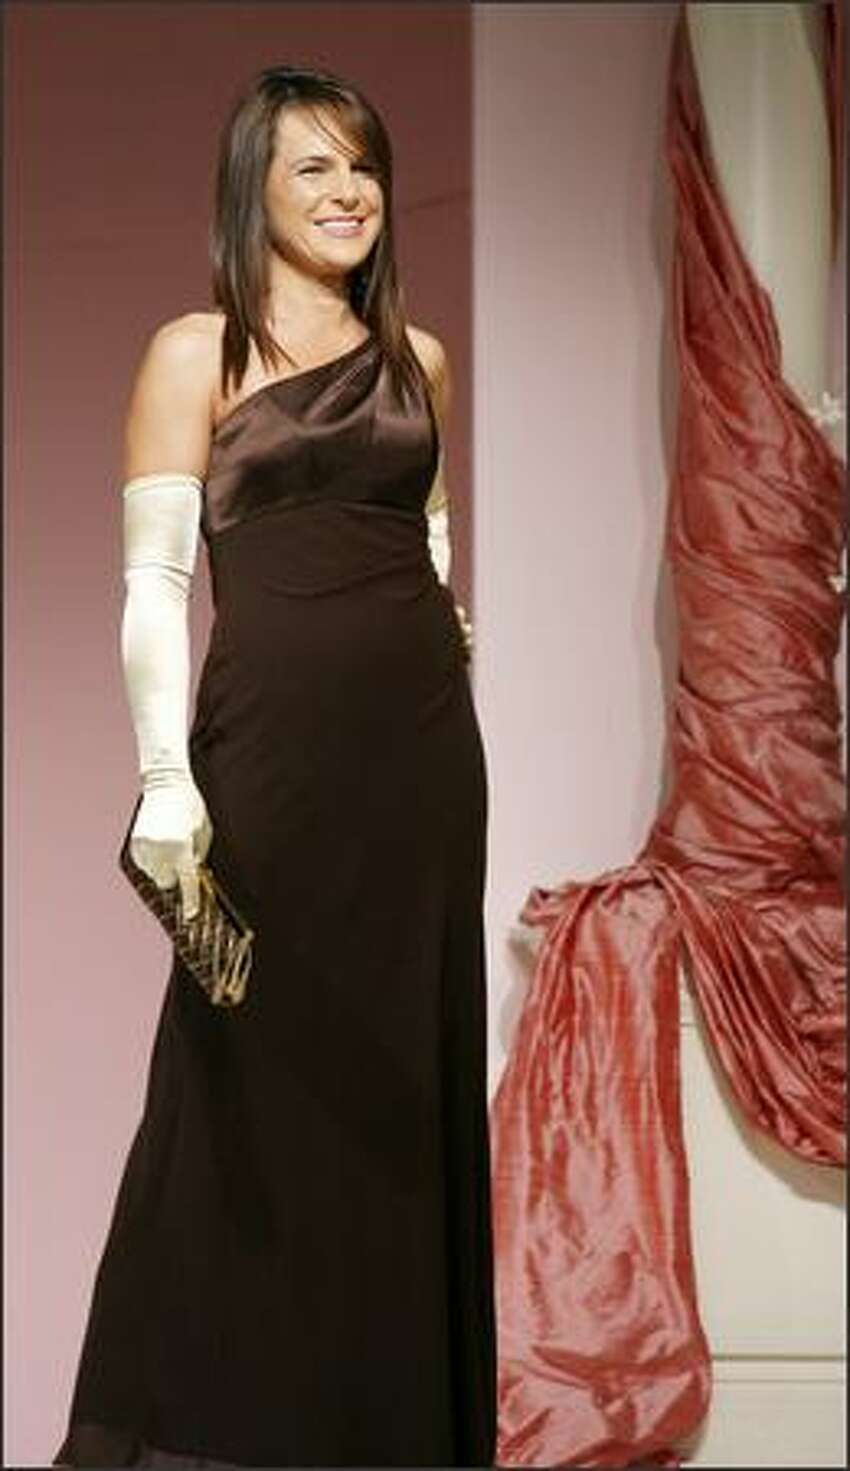 Mary Huletz models an evening gown.